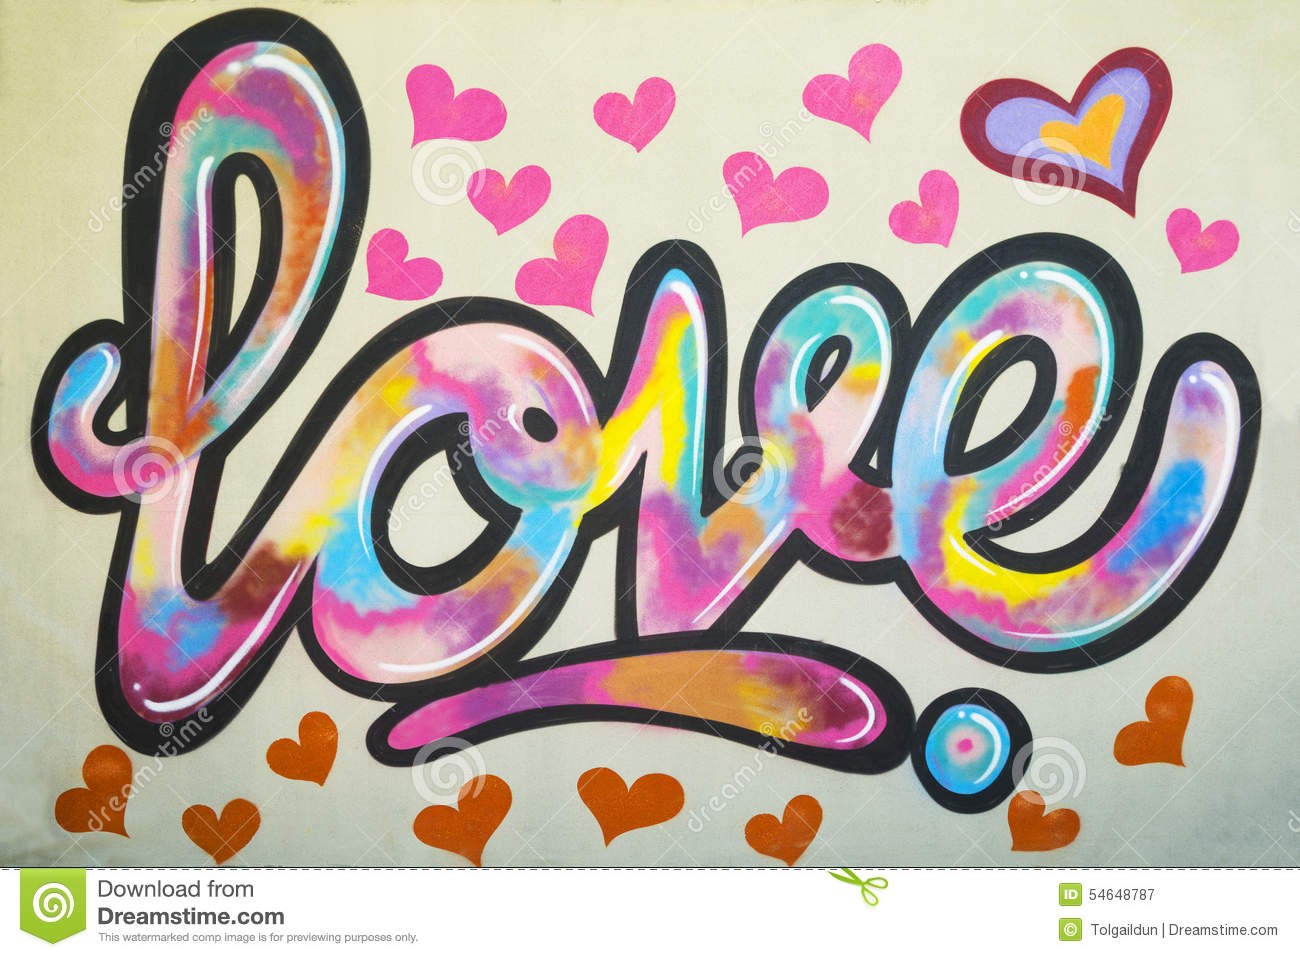 Graffiti wall text - Graffiti Text Love On The Wall With Many Pink Colored Heart Shapes Around Stock Photo